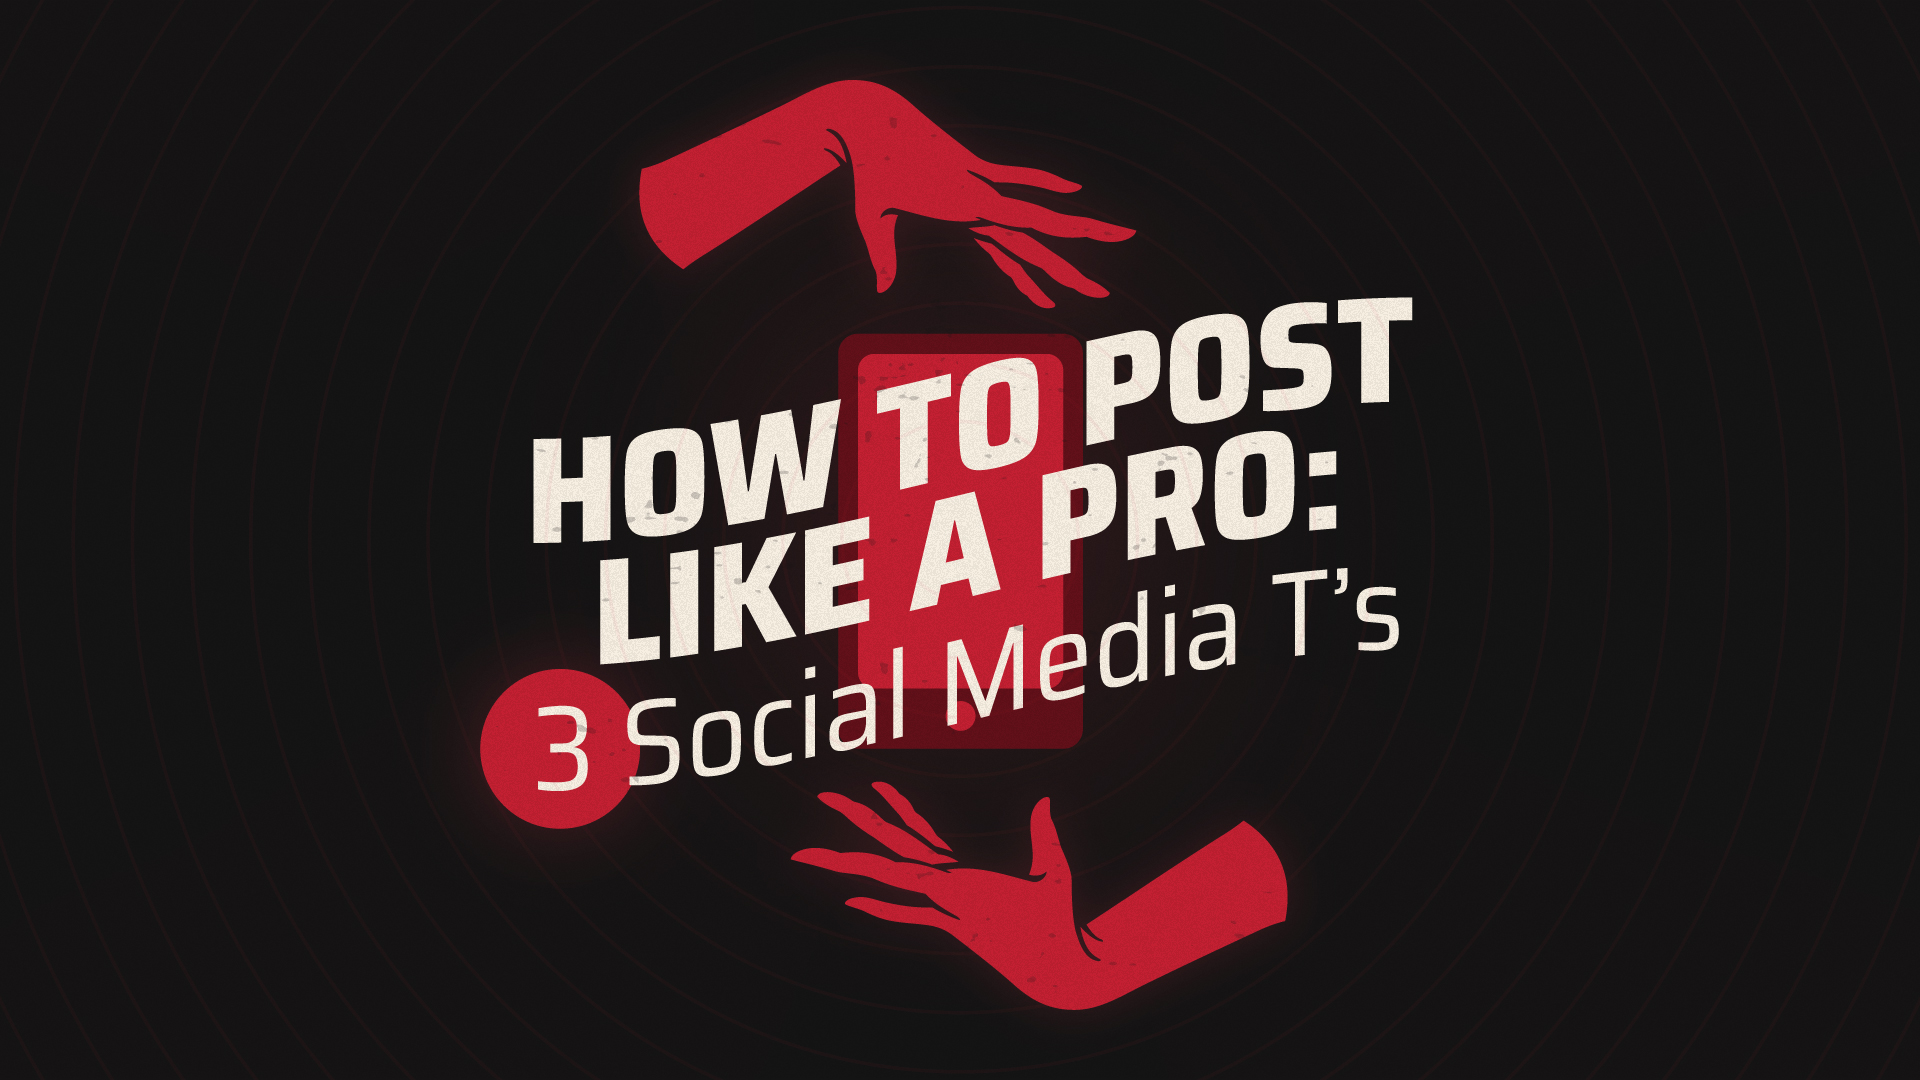 How to Post Like a Social Media Pro